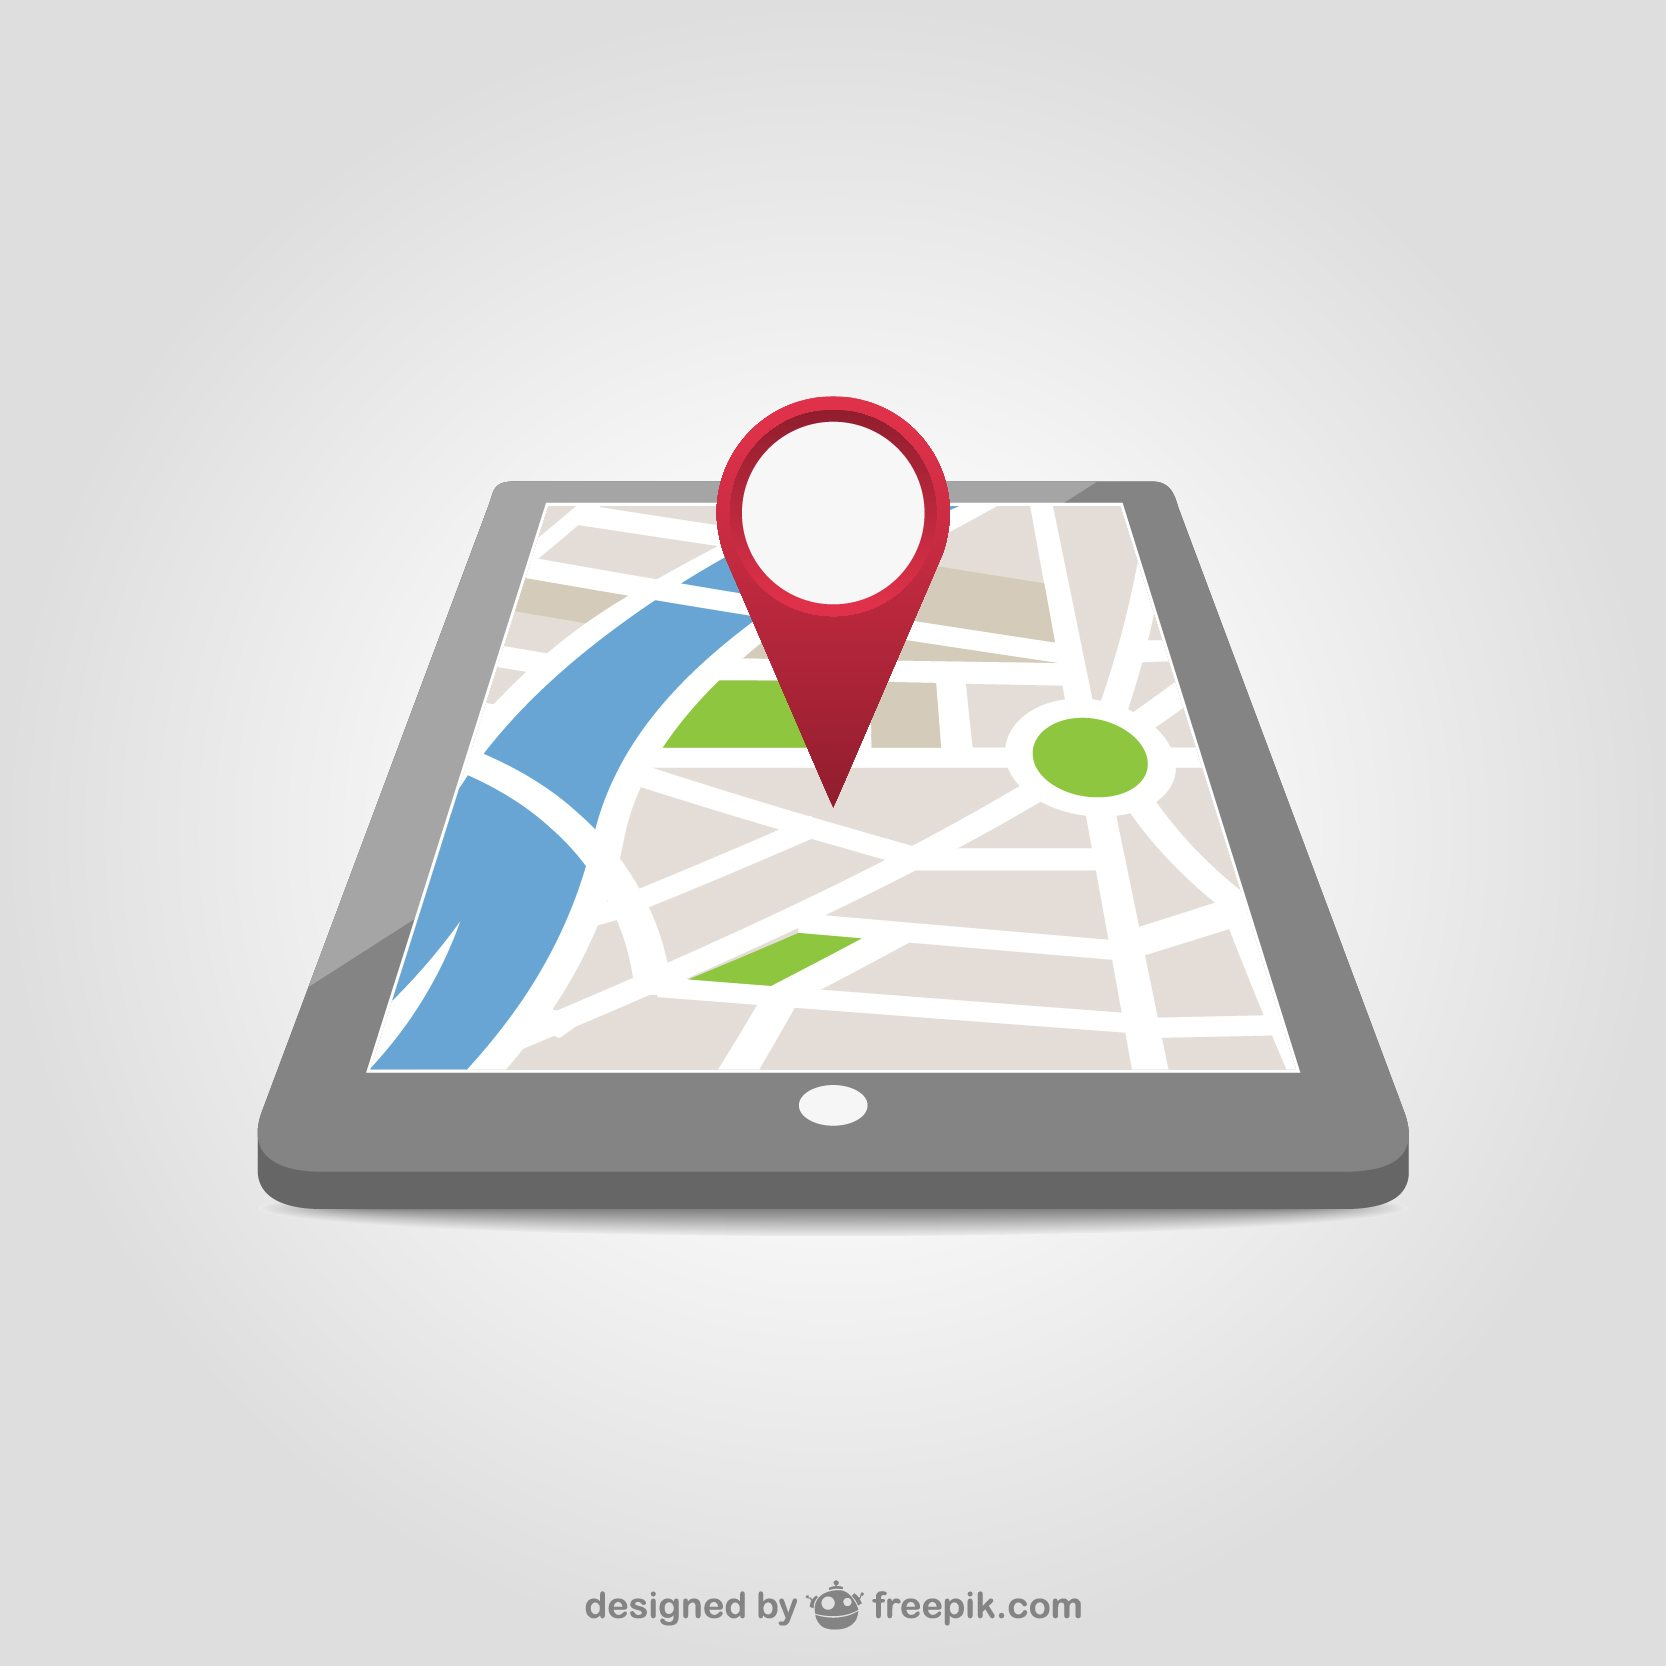 Innovation in Business: What is Geofencing and Why SMBs Need it